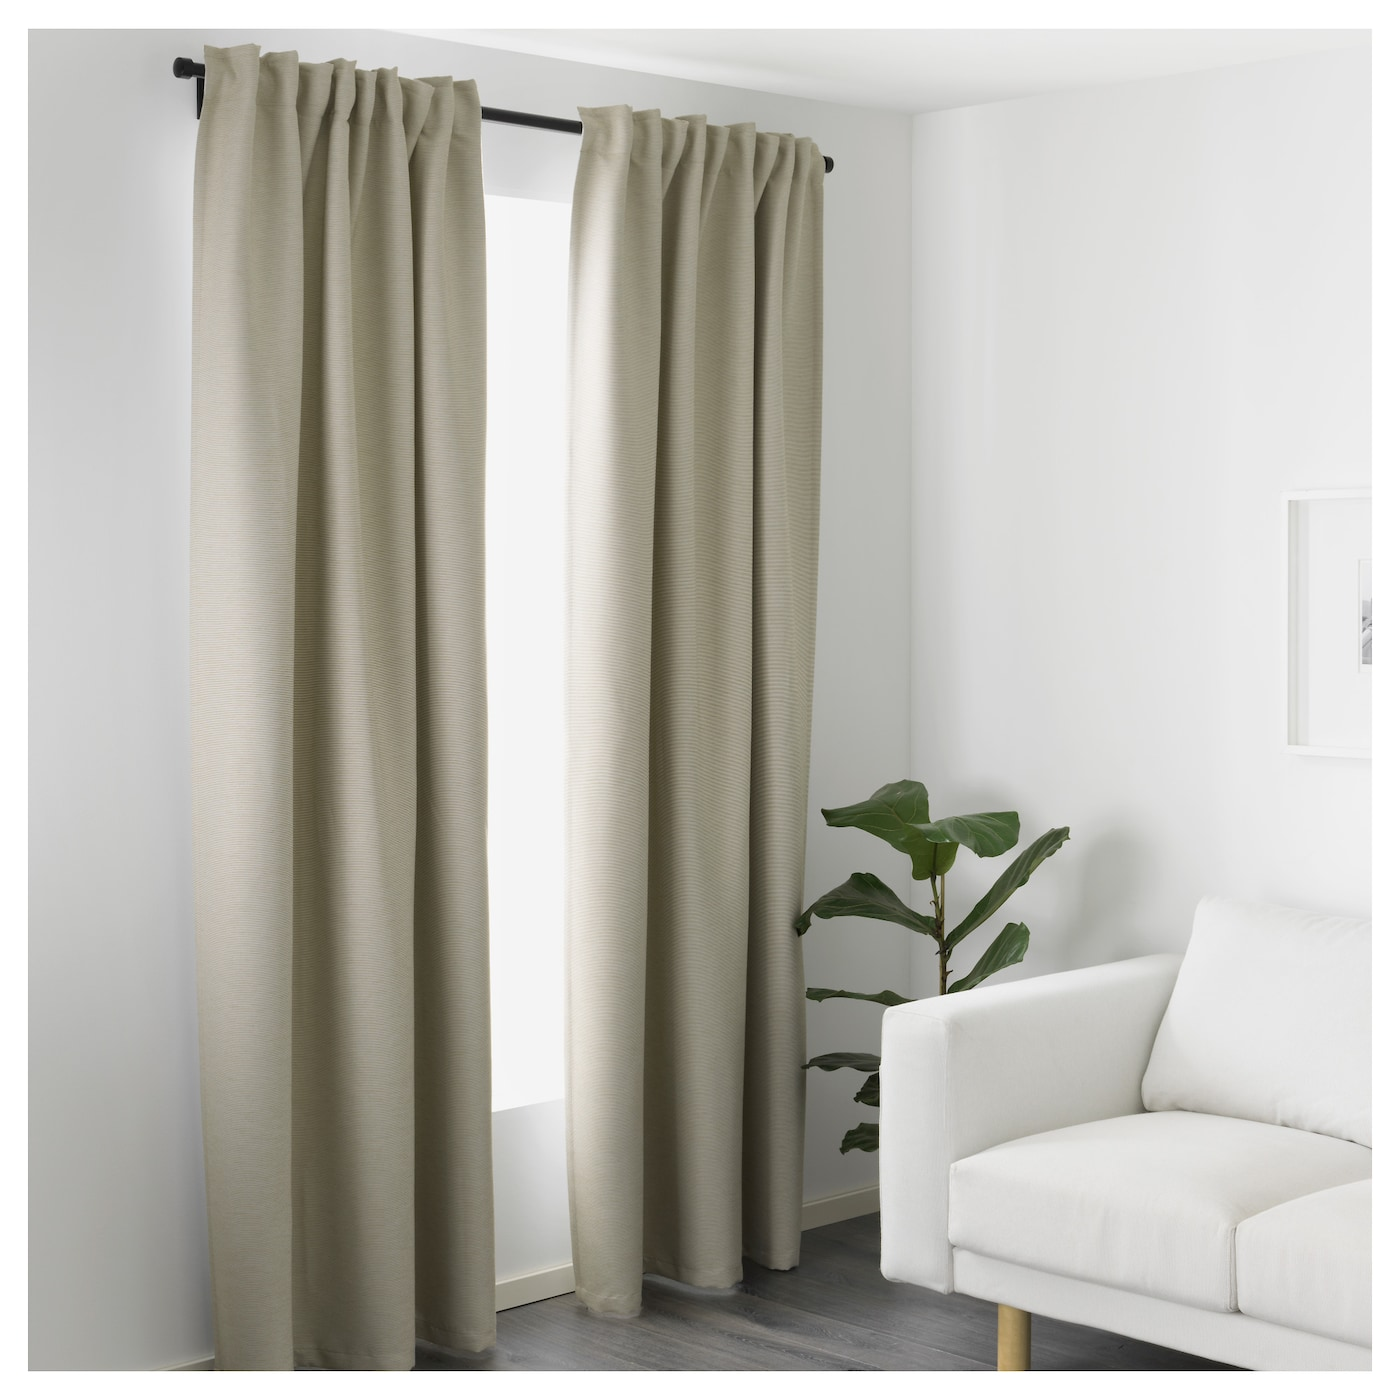 Vilborg curtains 1 pair beige 145x250 cm ikea Curtains and blinds